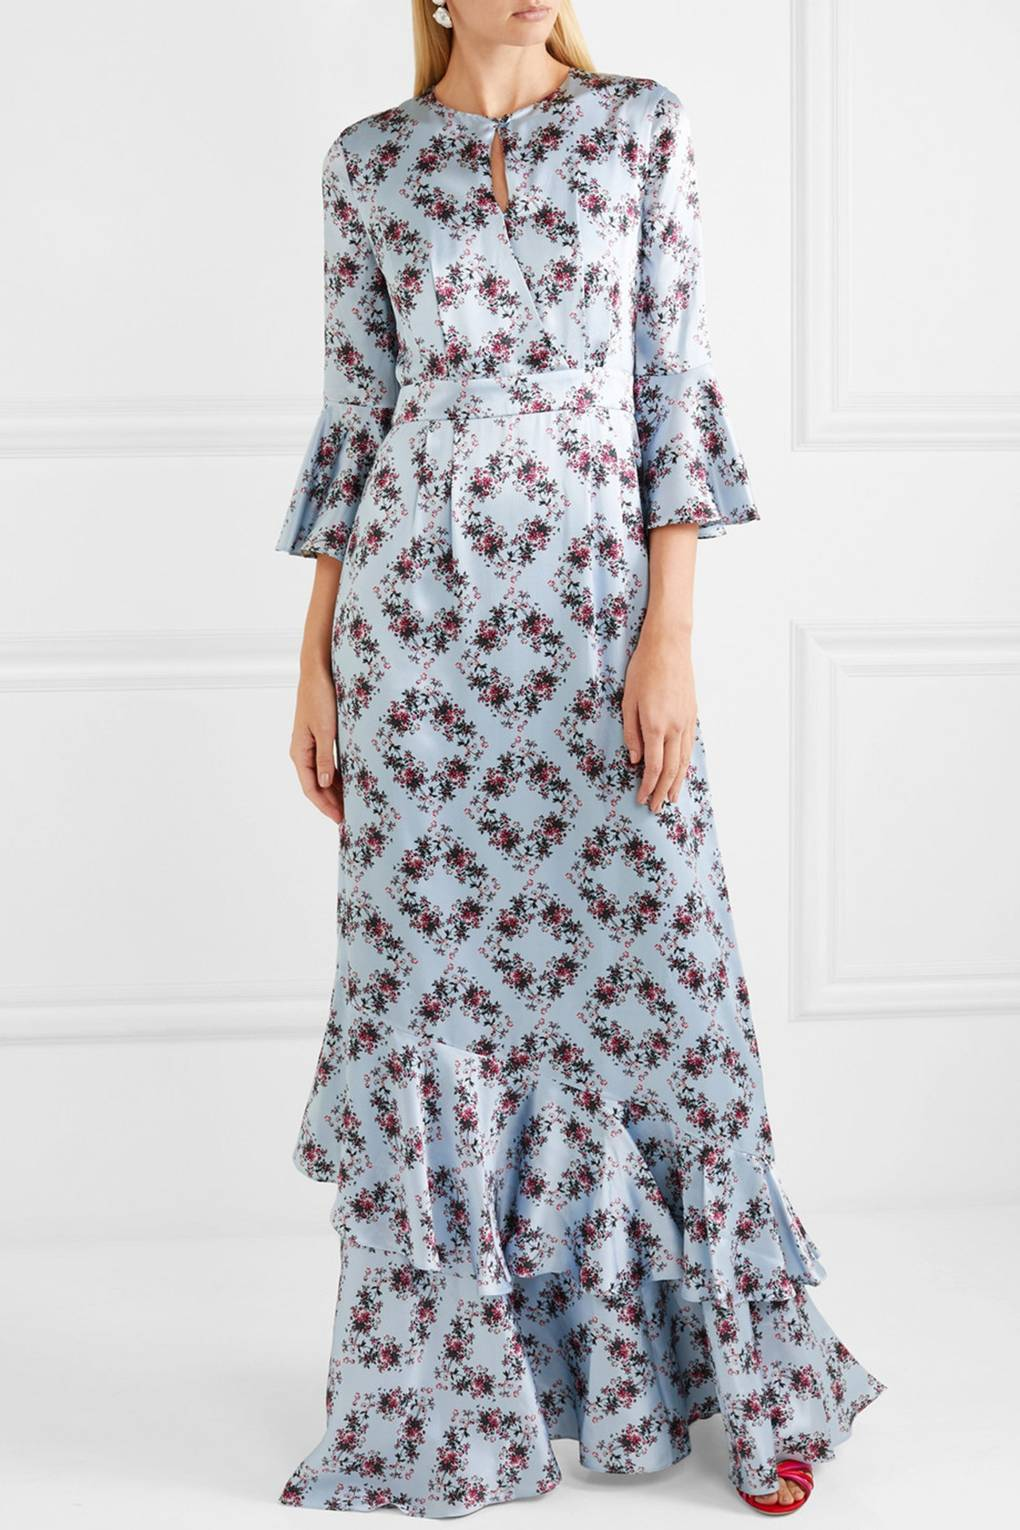 Floral Dresses 2018 The Best Summer Floral Dresses Glamour Uk